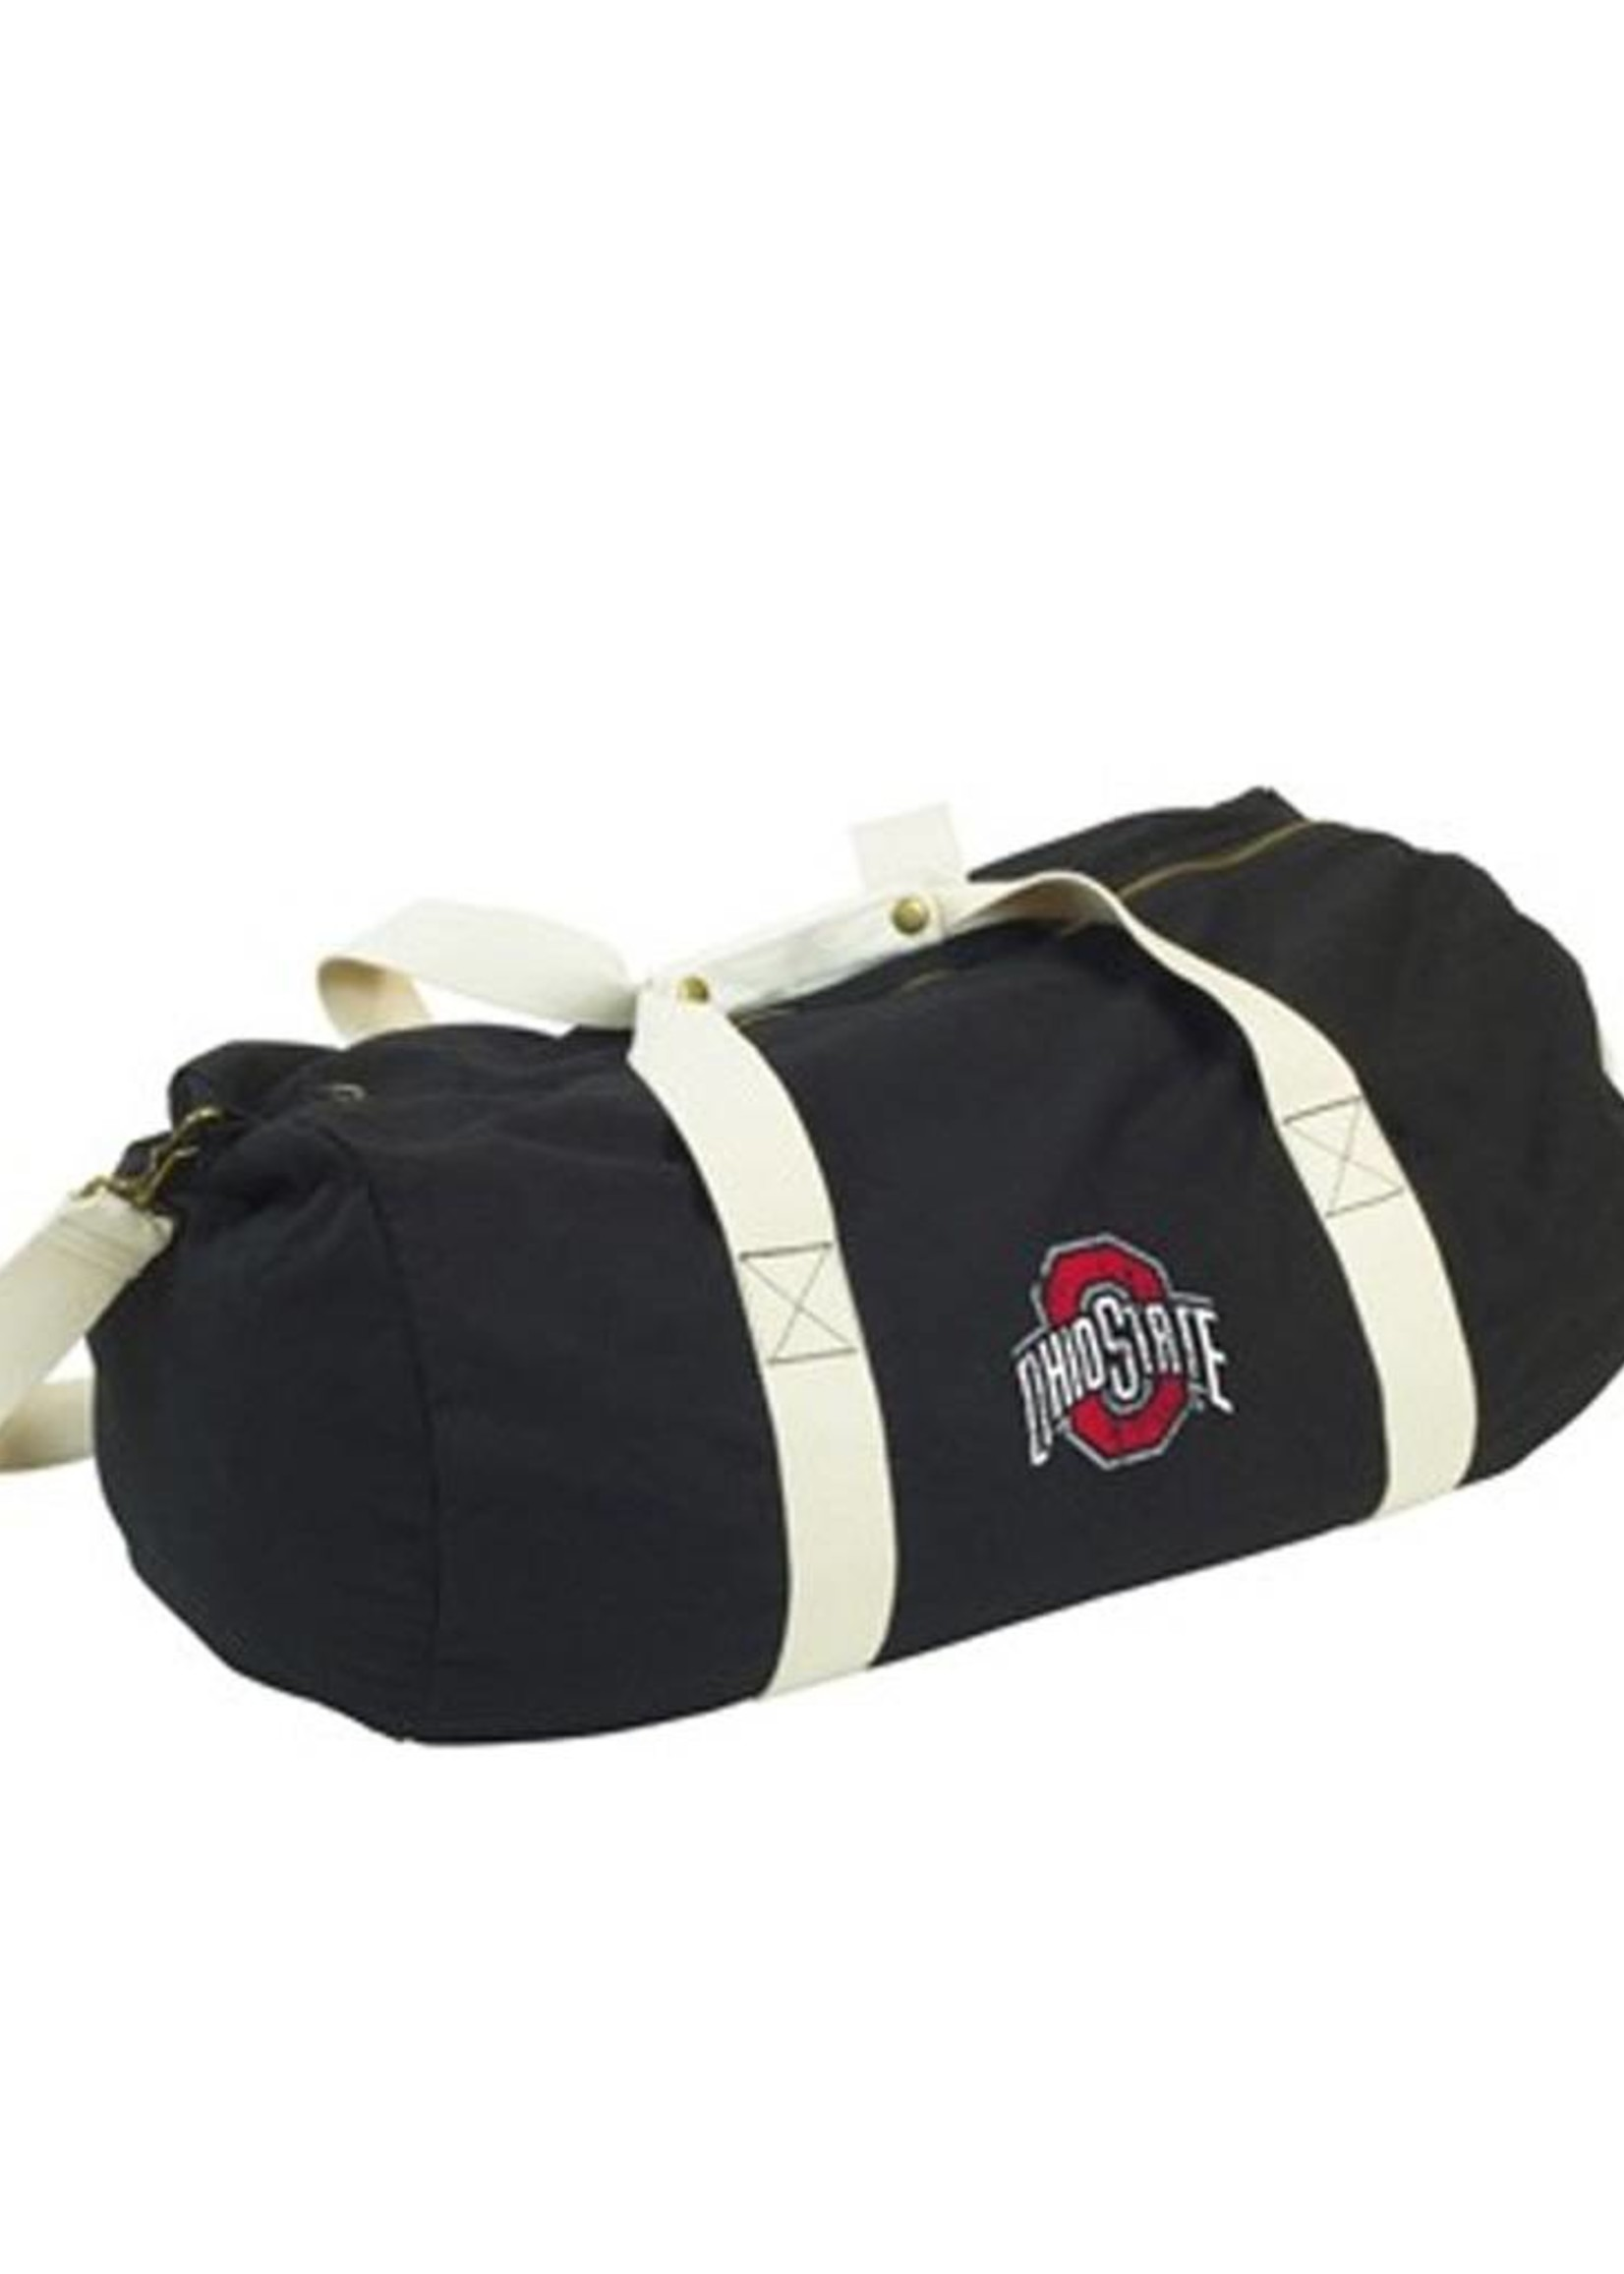 Ohio State University Sandlot Duffel Bag